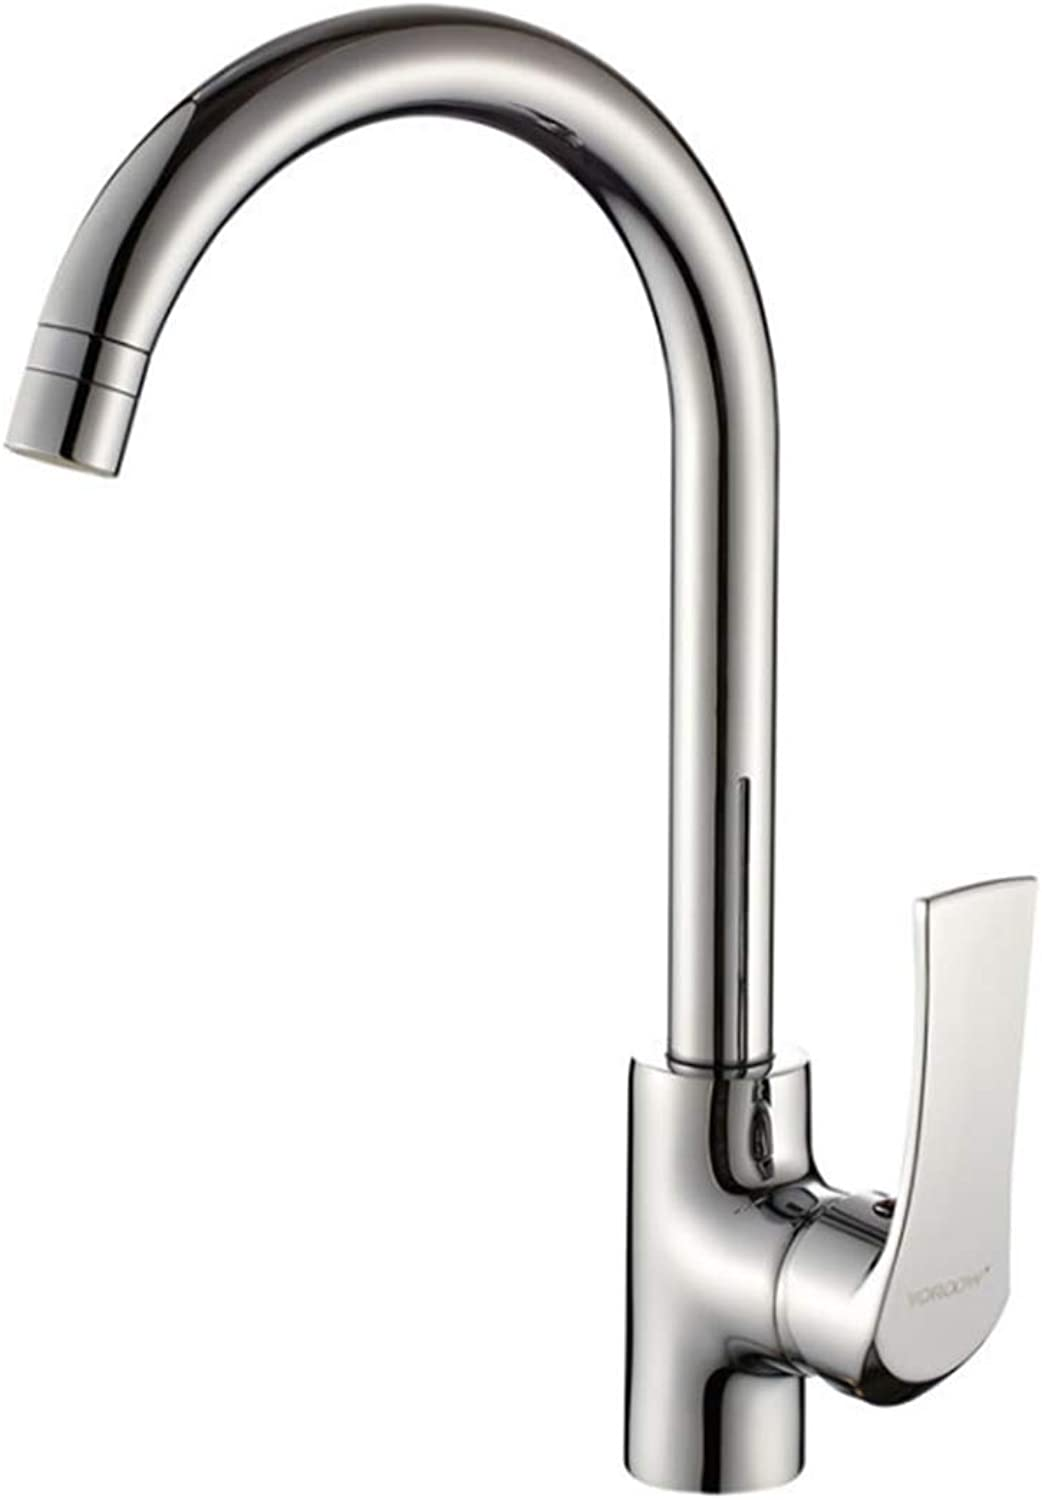 Kitchen Faucet Washing Basin Basin Cold and hot Water Tank Copper tap Environmental Predection Faucet